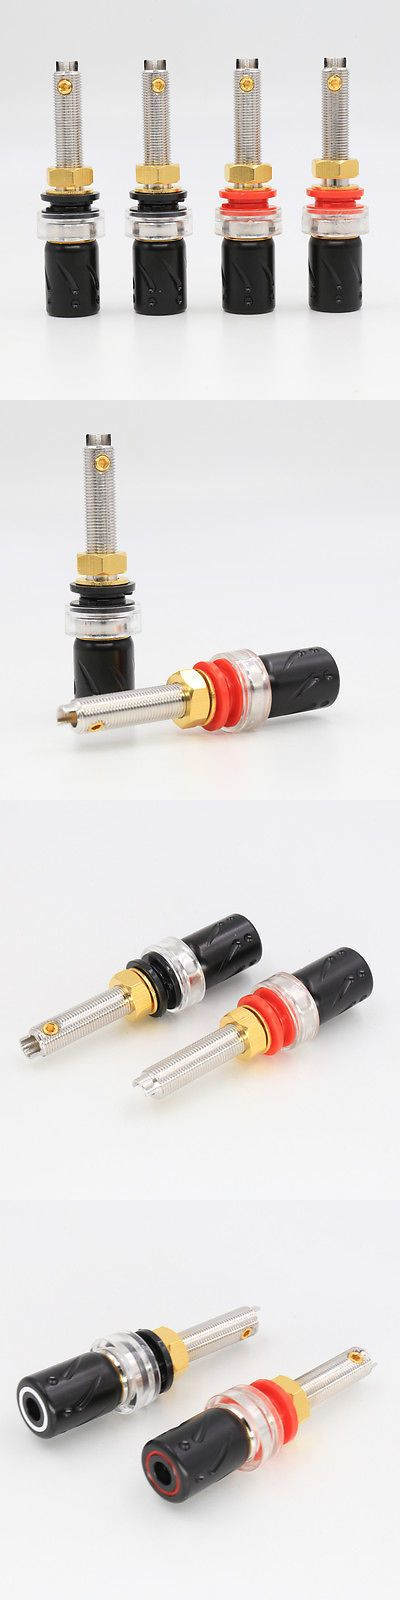 Audio Cable Plugs and Jacks: 4X Viborg Audio 100% Pure Copper Rhodium Plated Speaker Terminal Binding Post -> BUY IT NOW ONLY: $70 on eBay!